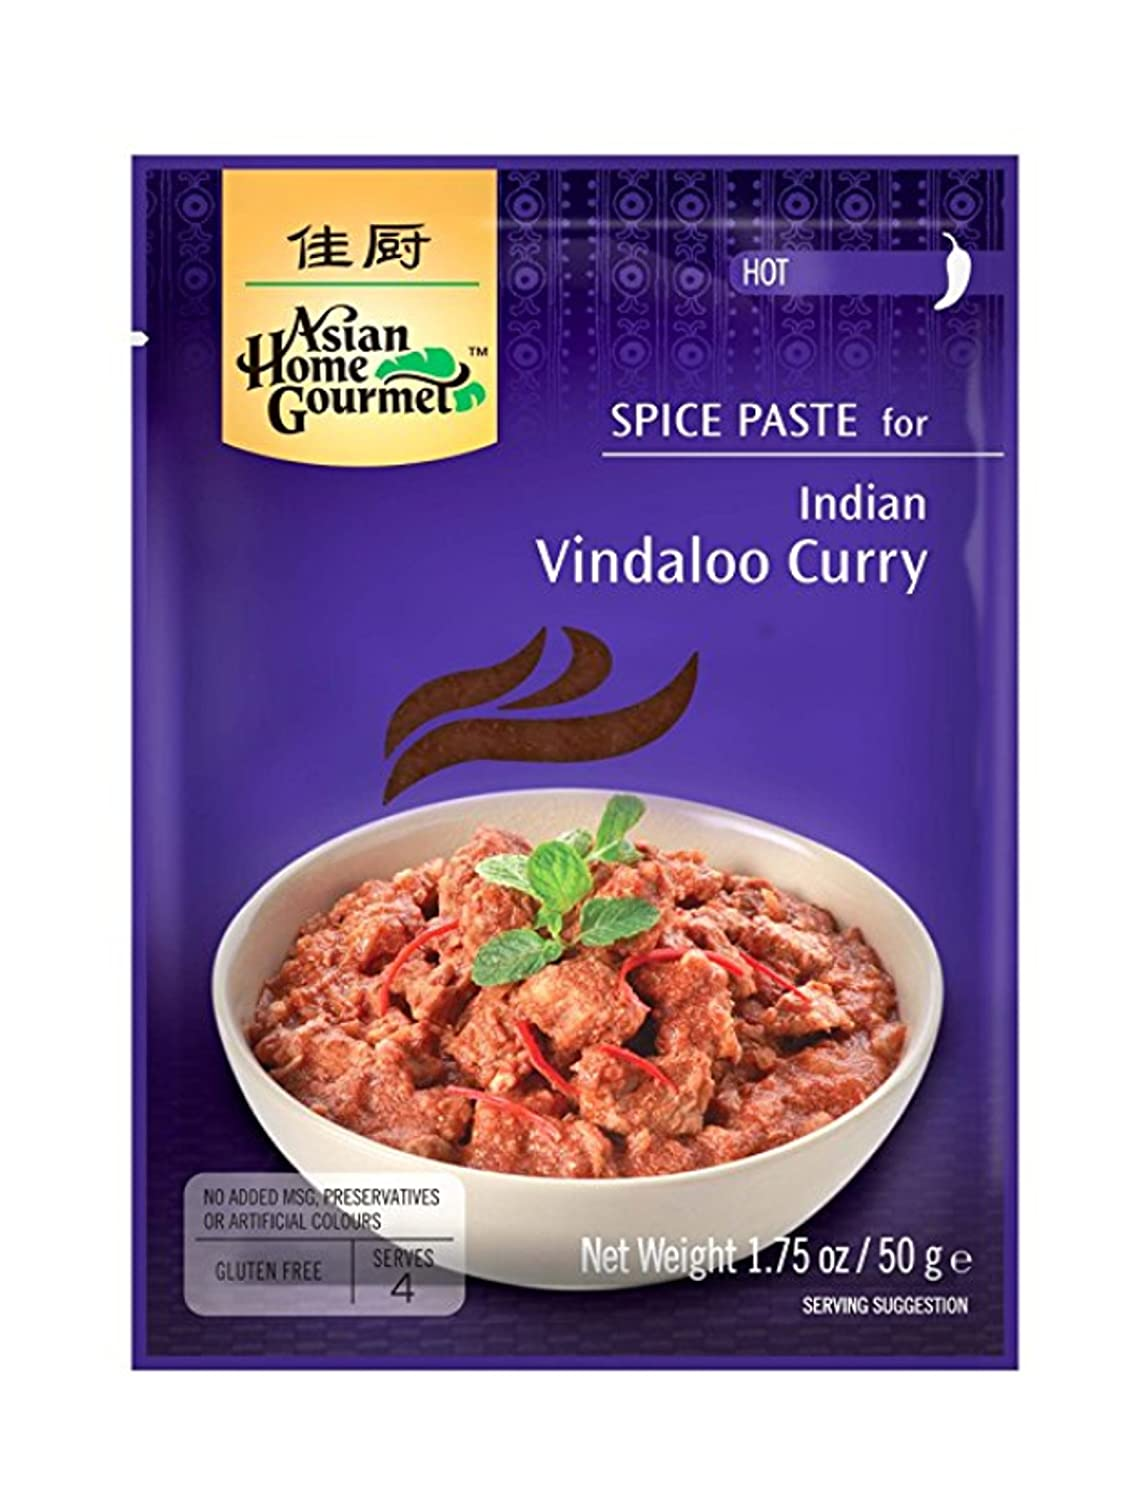 Asian Home Gourmet Spice Paste for Indian Vindaloo Curry, 1.75 oz, 3 packs